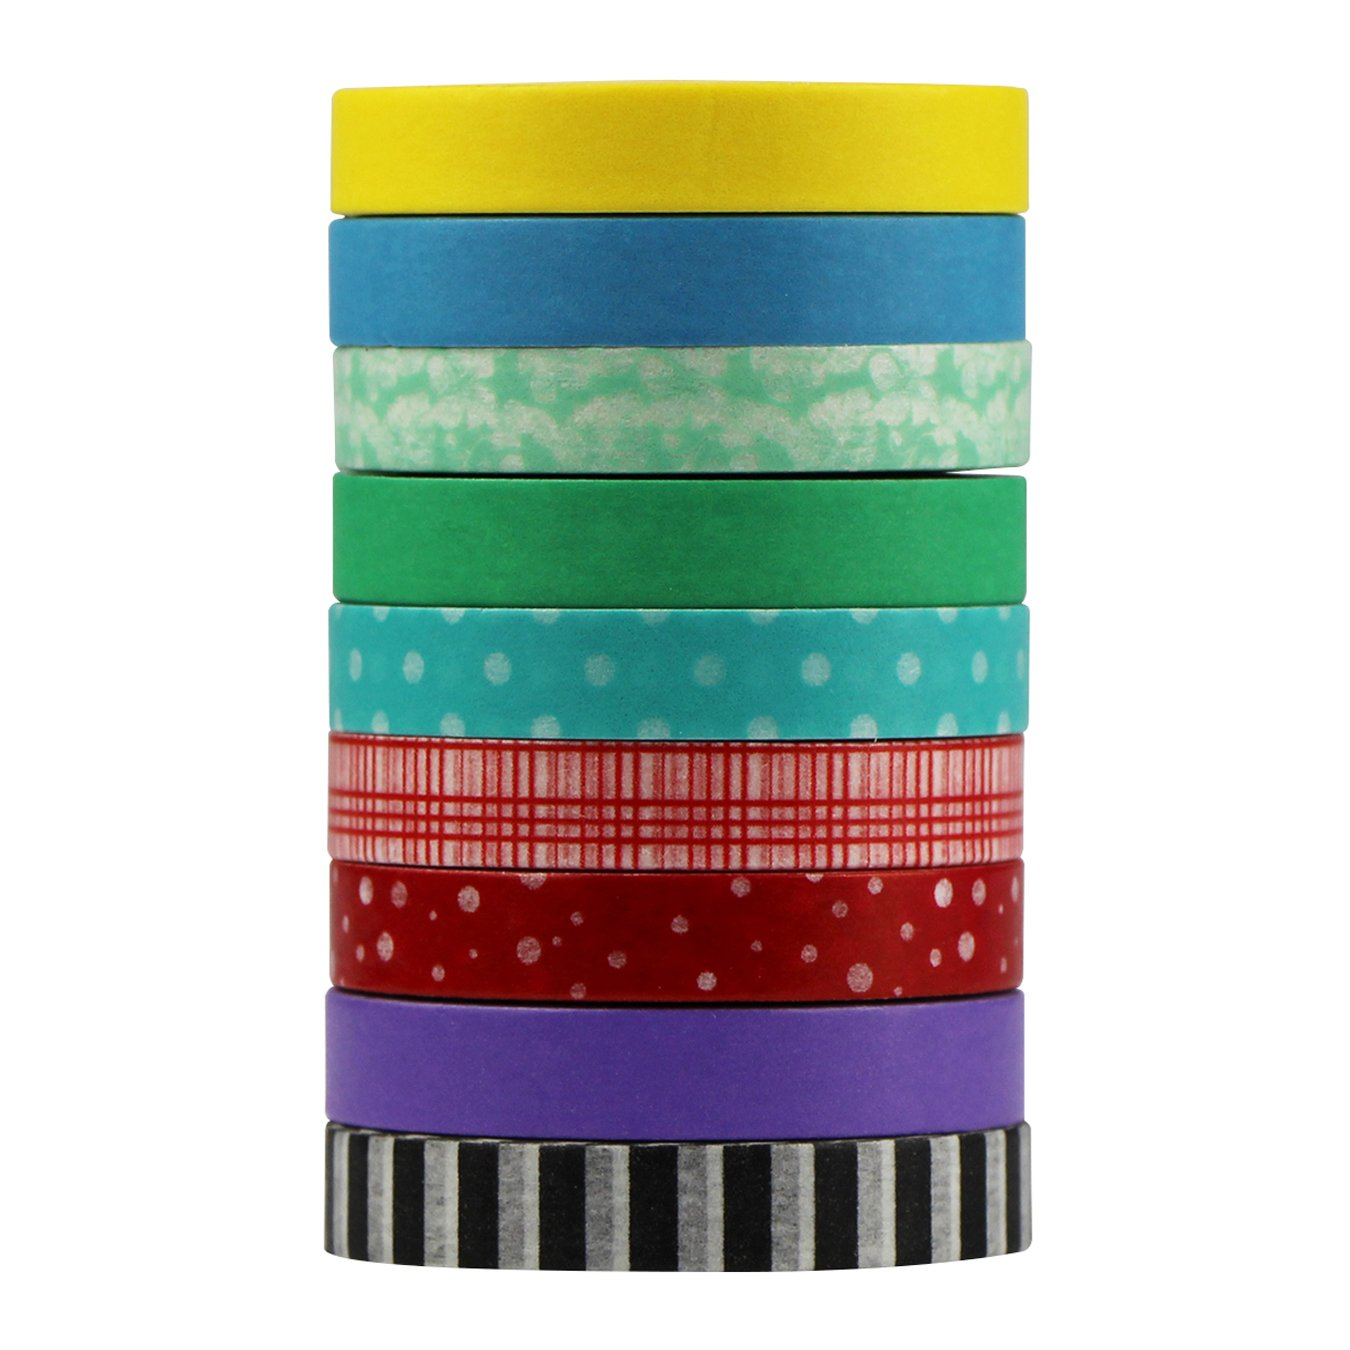 UOOOM 9 Ruban adhé sif Washi Tape Ruban adhé sif de masquage dé coratif scrapbooking cadeau DIY Craft TAP-37